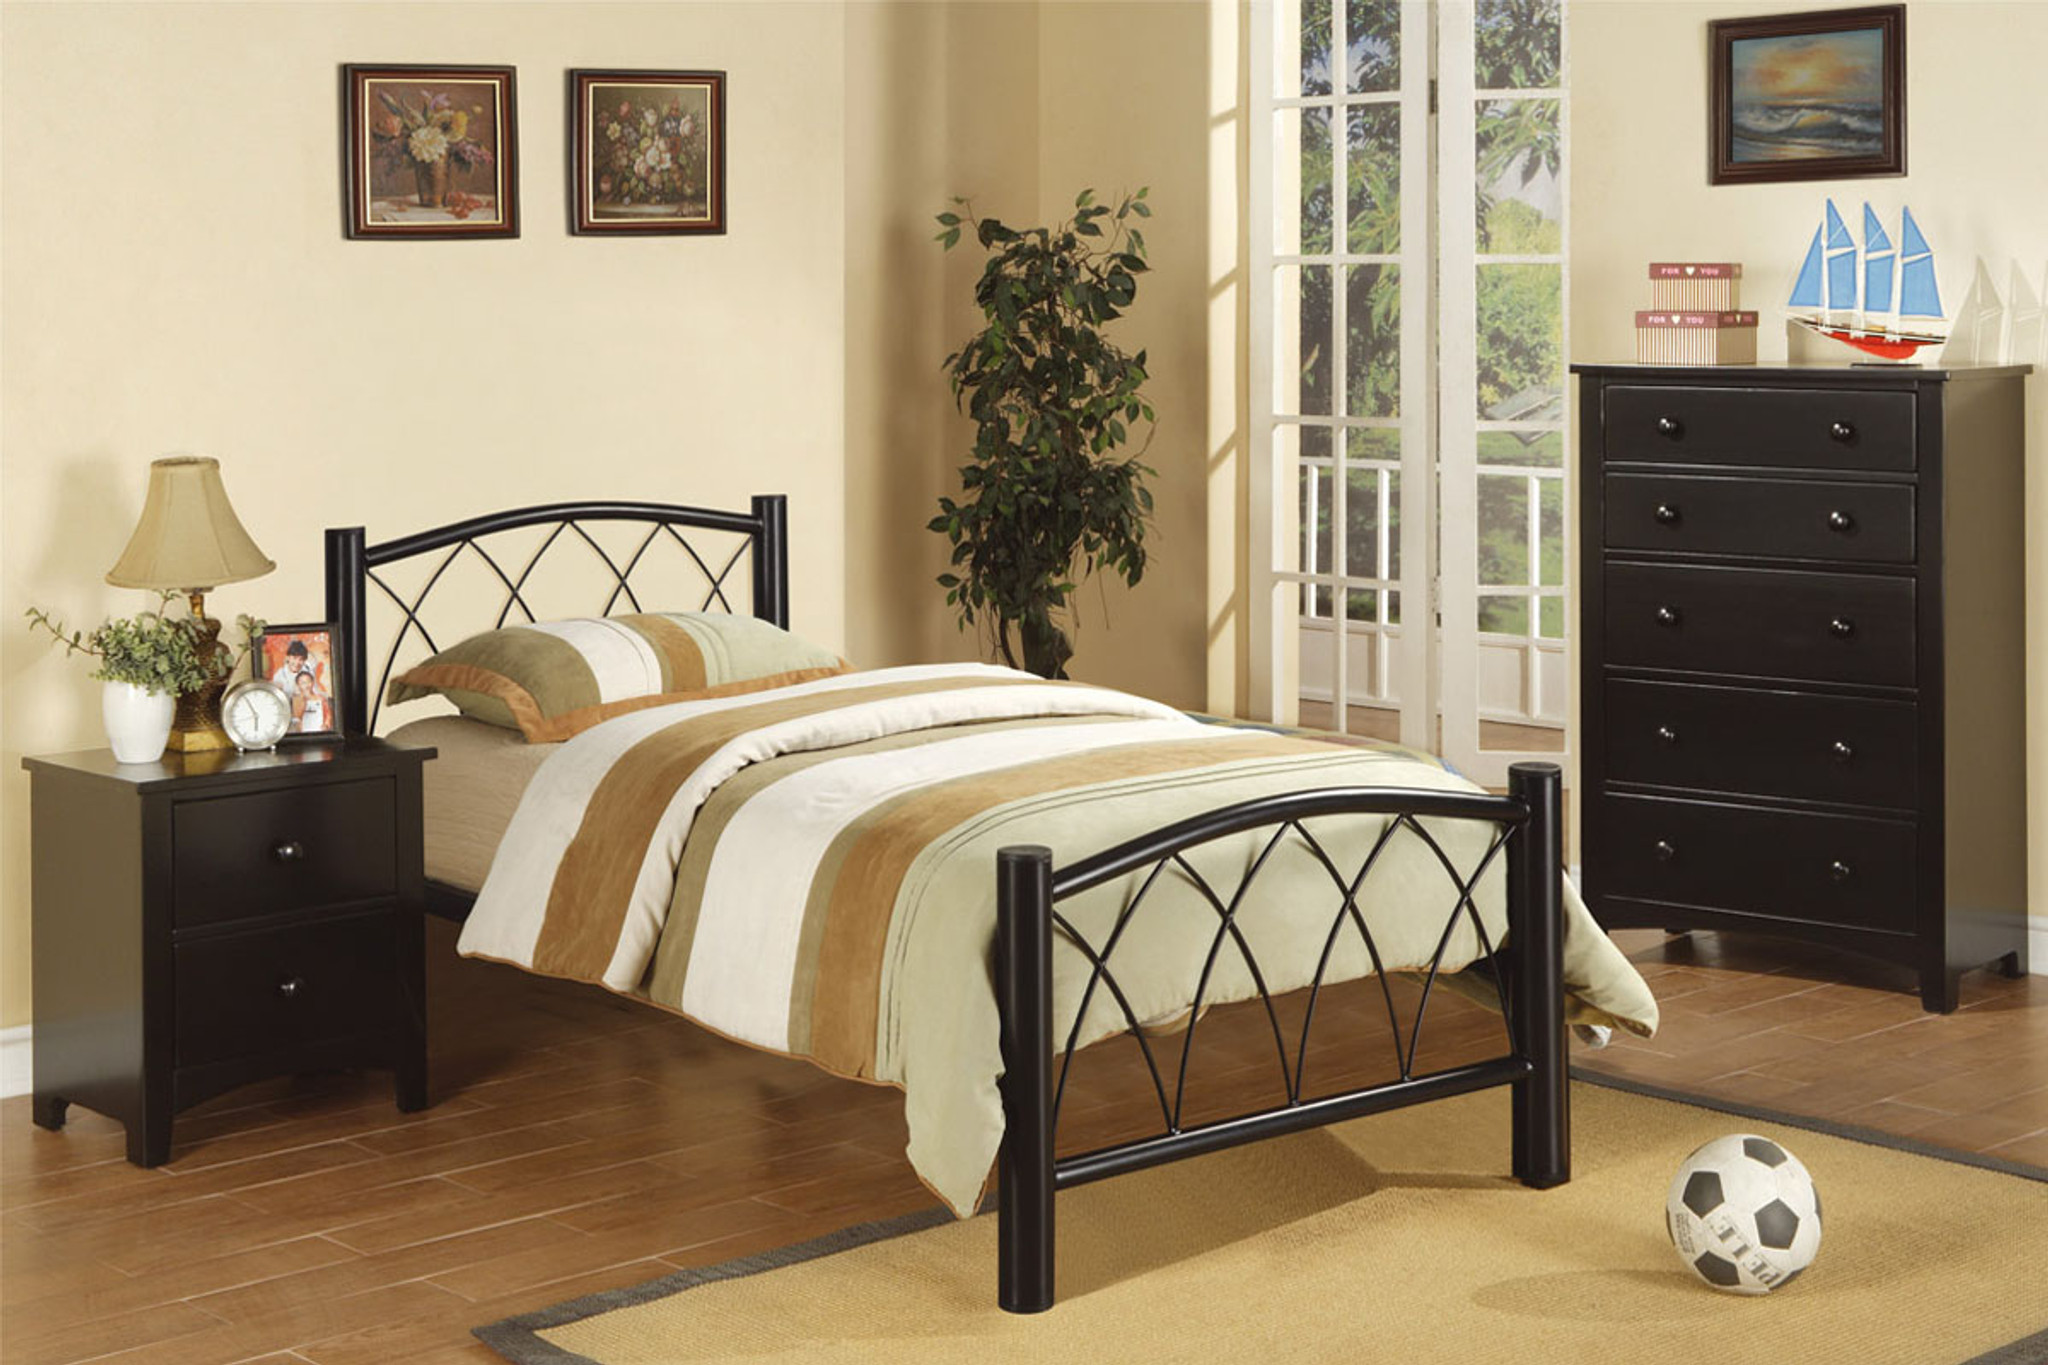 Kassa Mall Home Furniture F9010t F9010f F4236 Twin Full Size Bed In Black Metal Frame